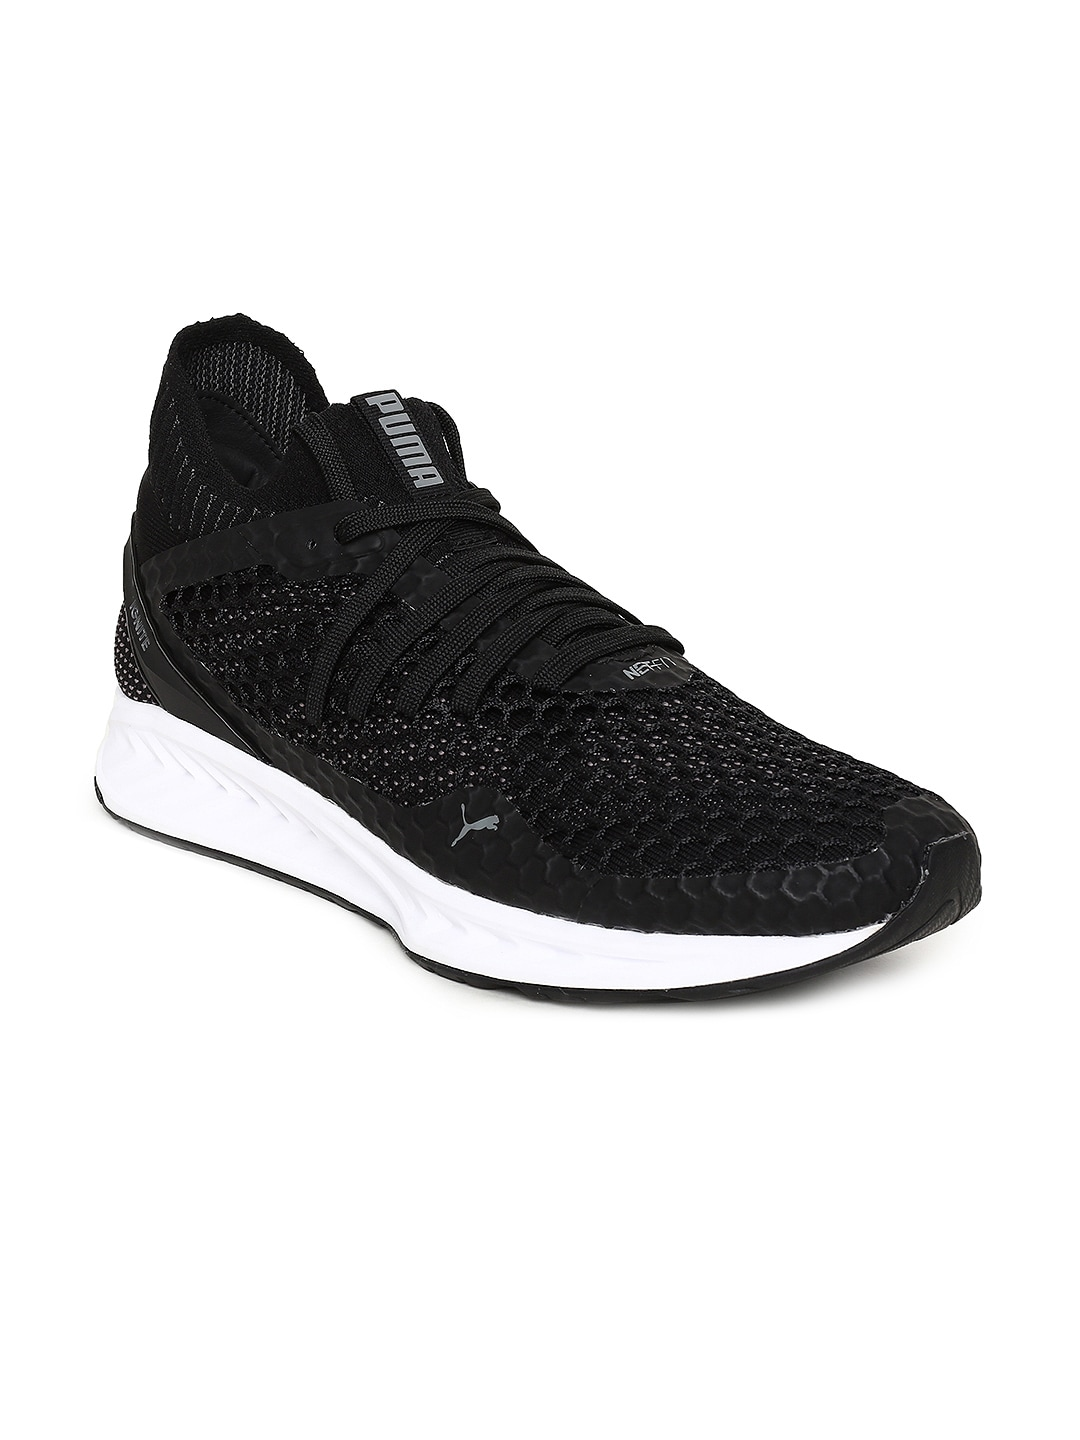 Puma® - Buy Orignal Puma products in India  f45c4253b